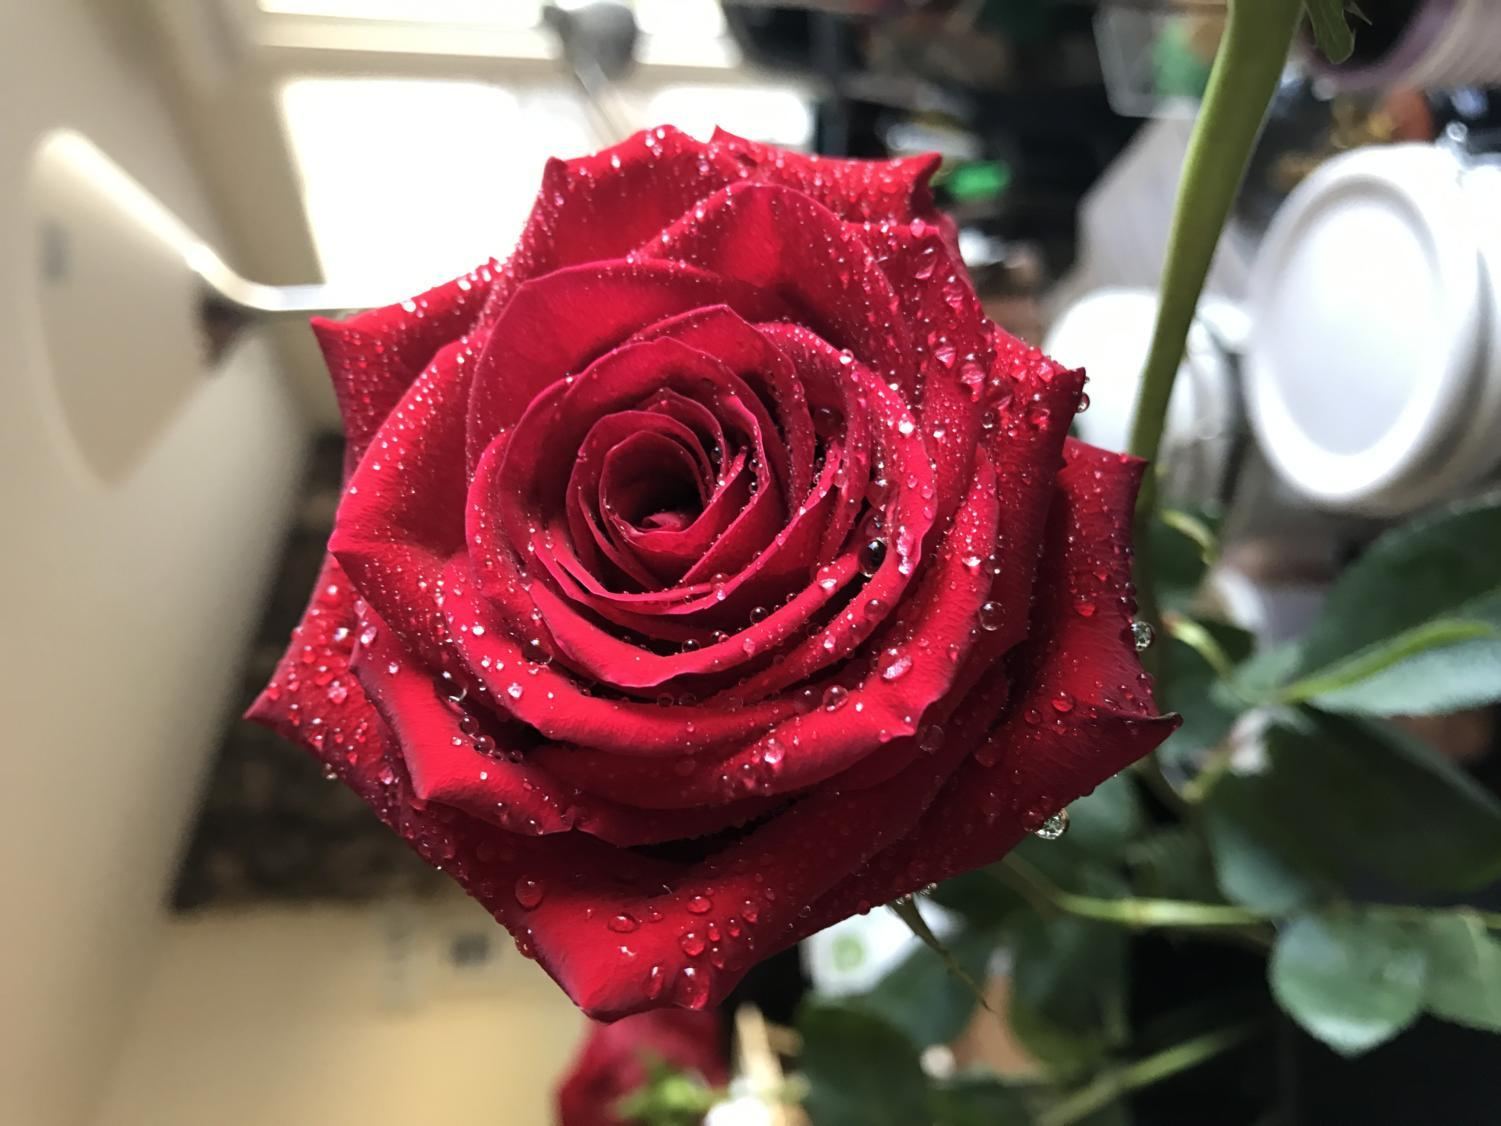 Roses are the classic red color and will be delivered to students during their third period class.